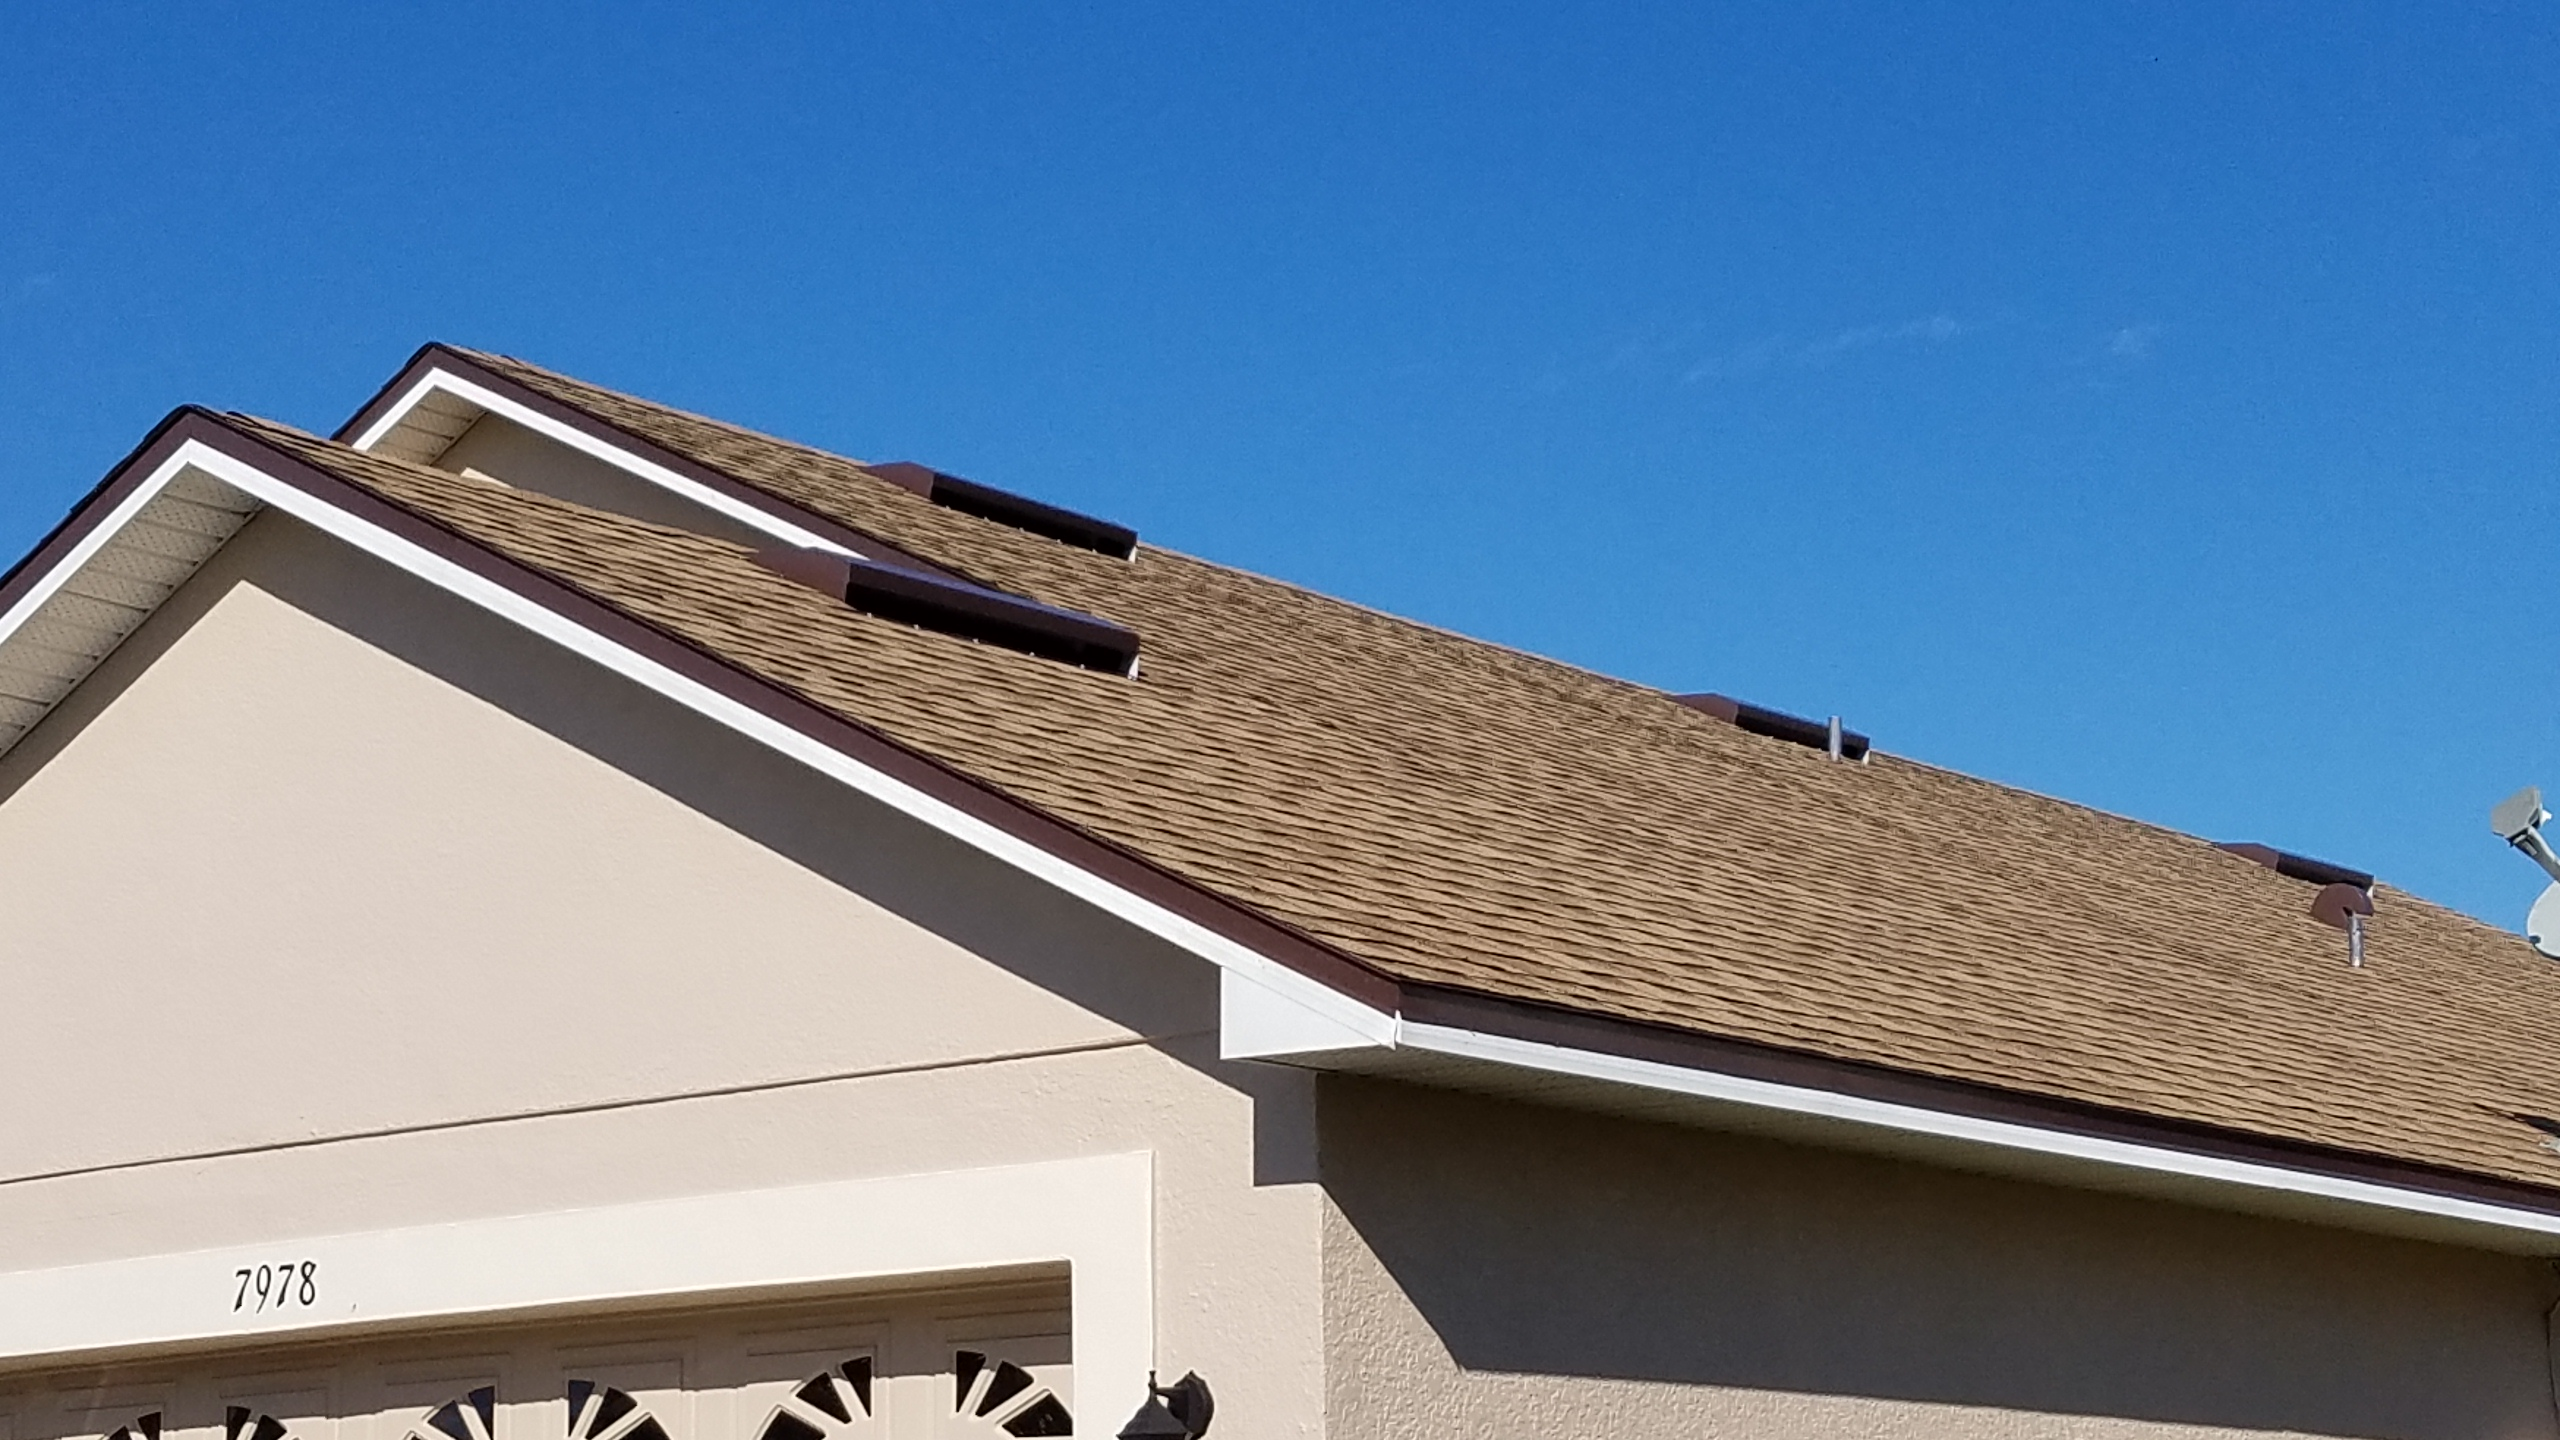 How to make a roof correctly